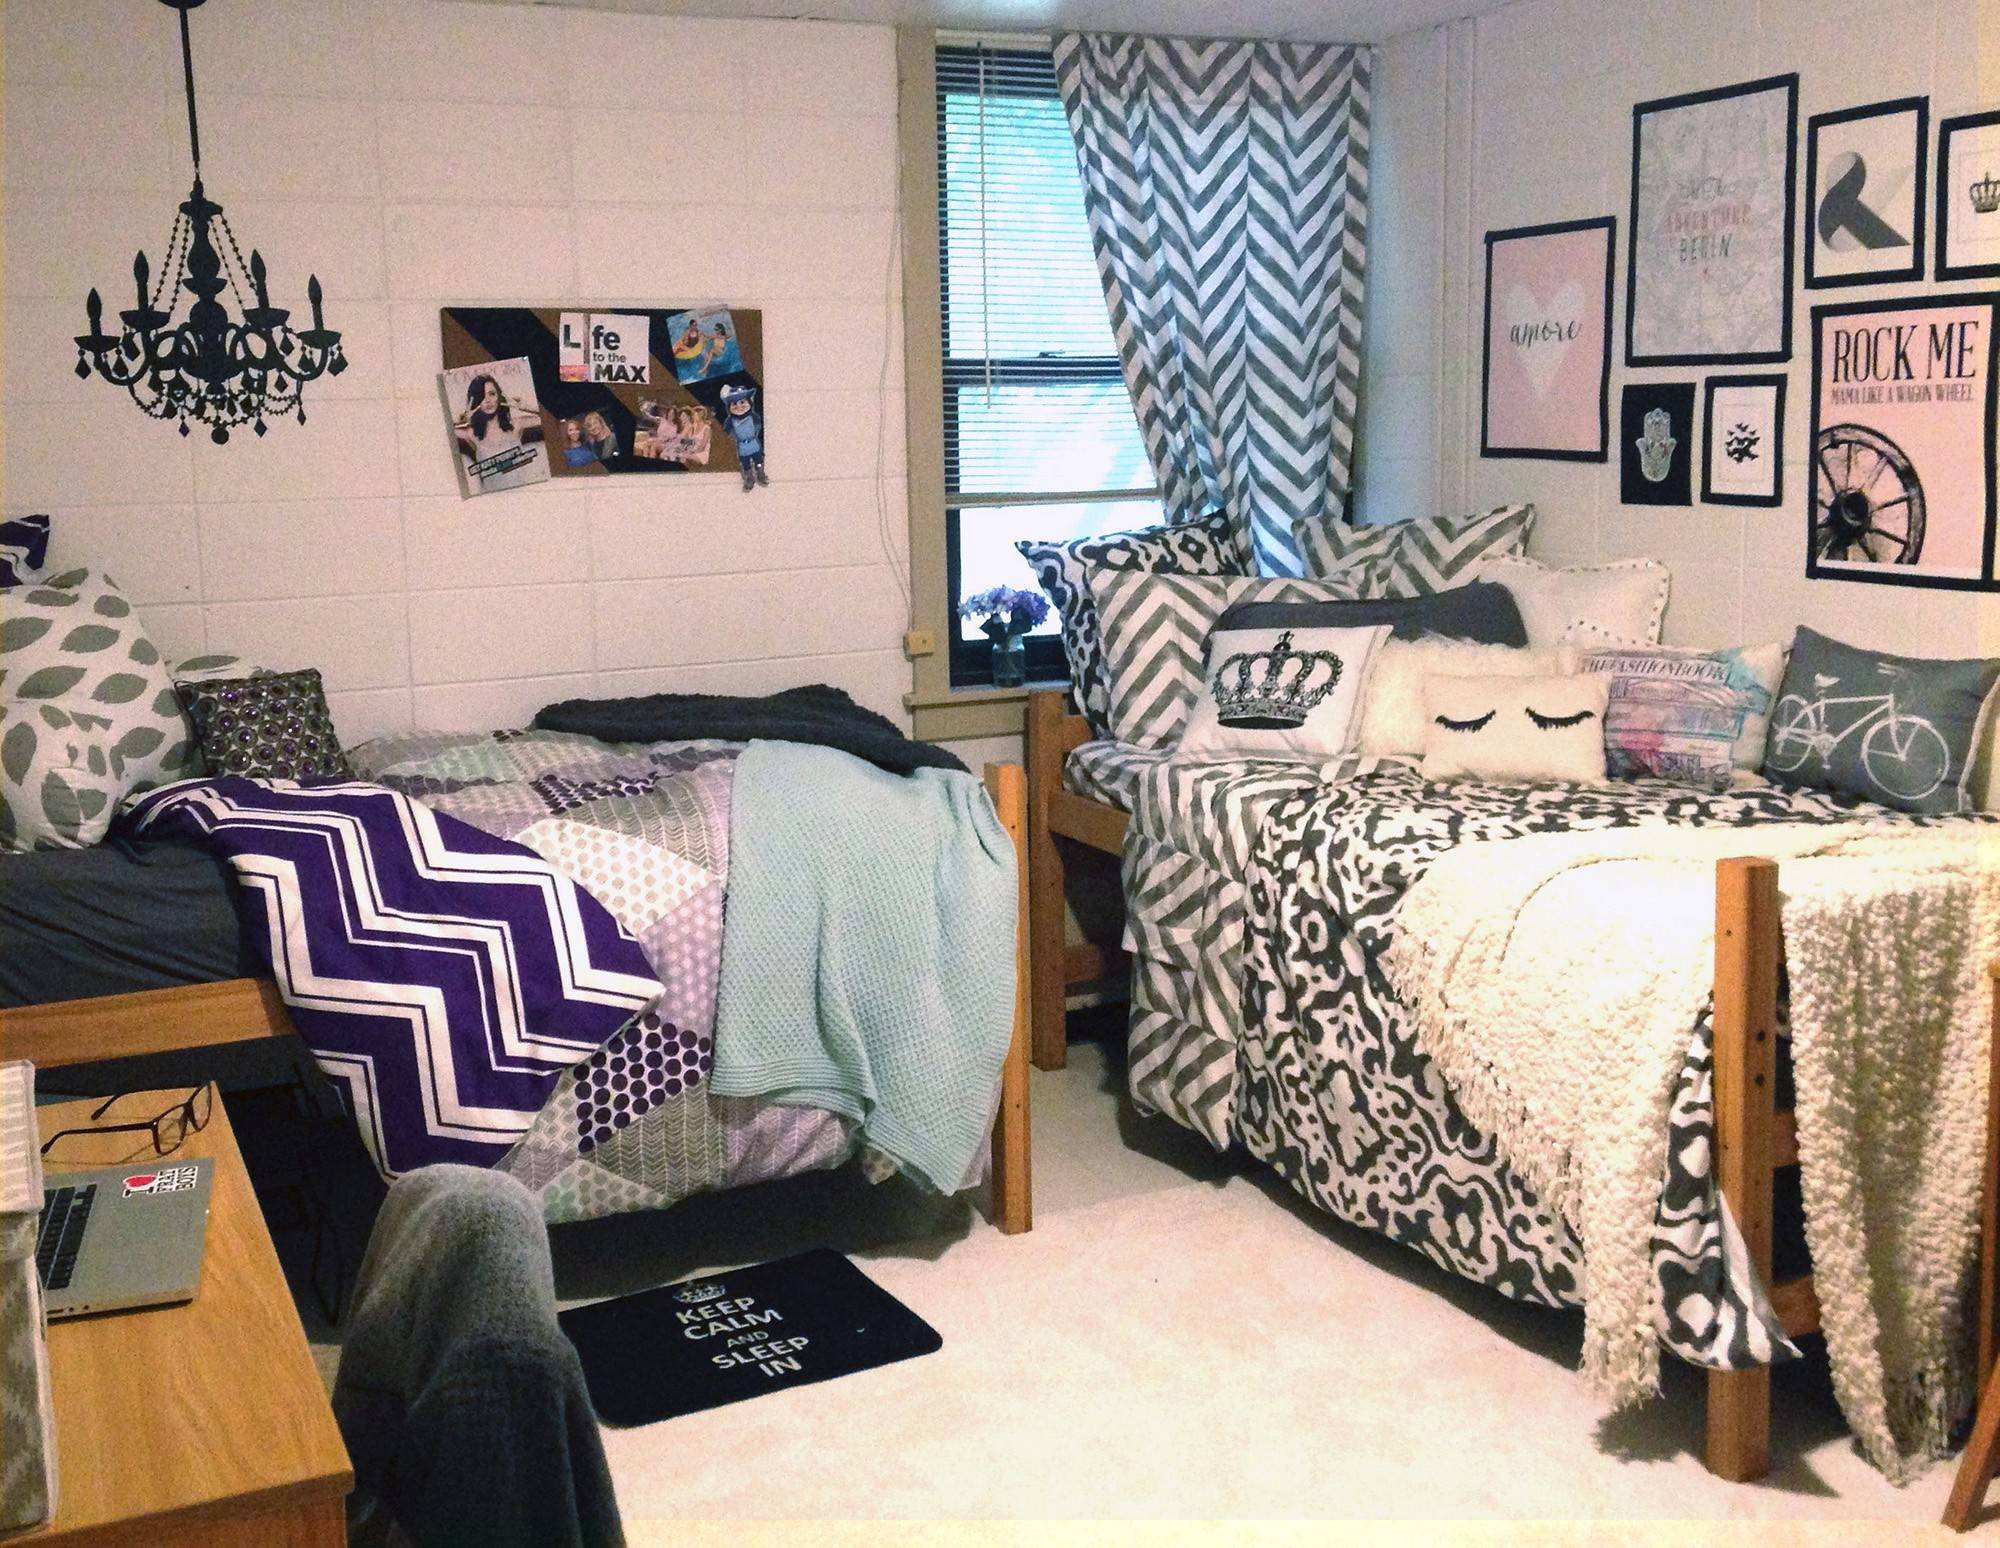 This dormitory room was decorated with help from Dormify.com an online design business & Designing parents turn dorm rooms into dream spaces